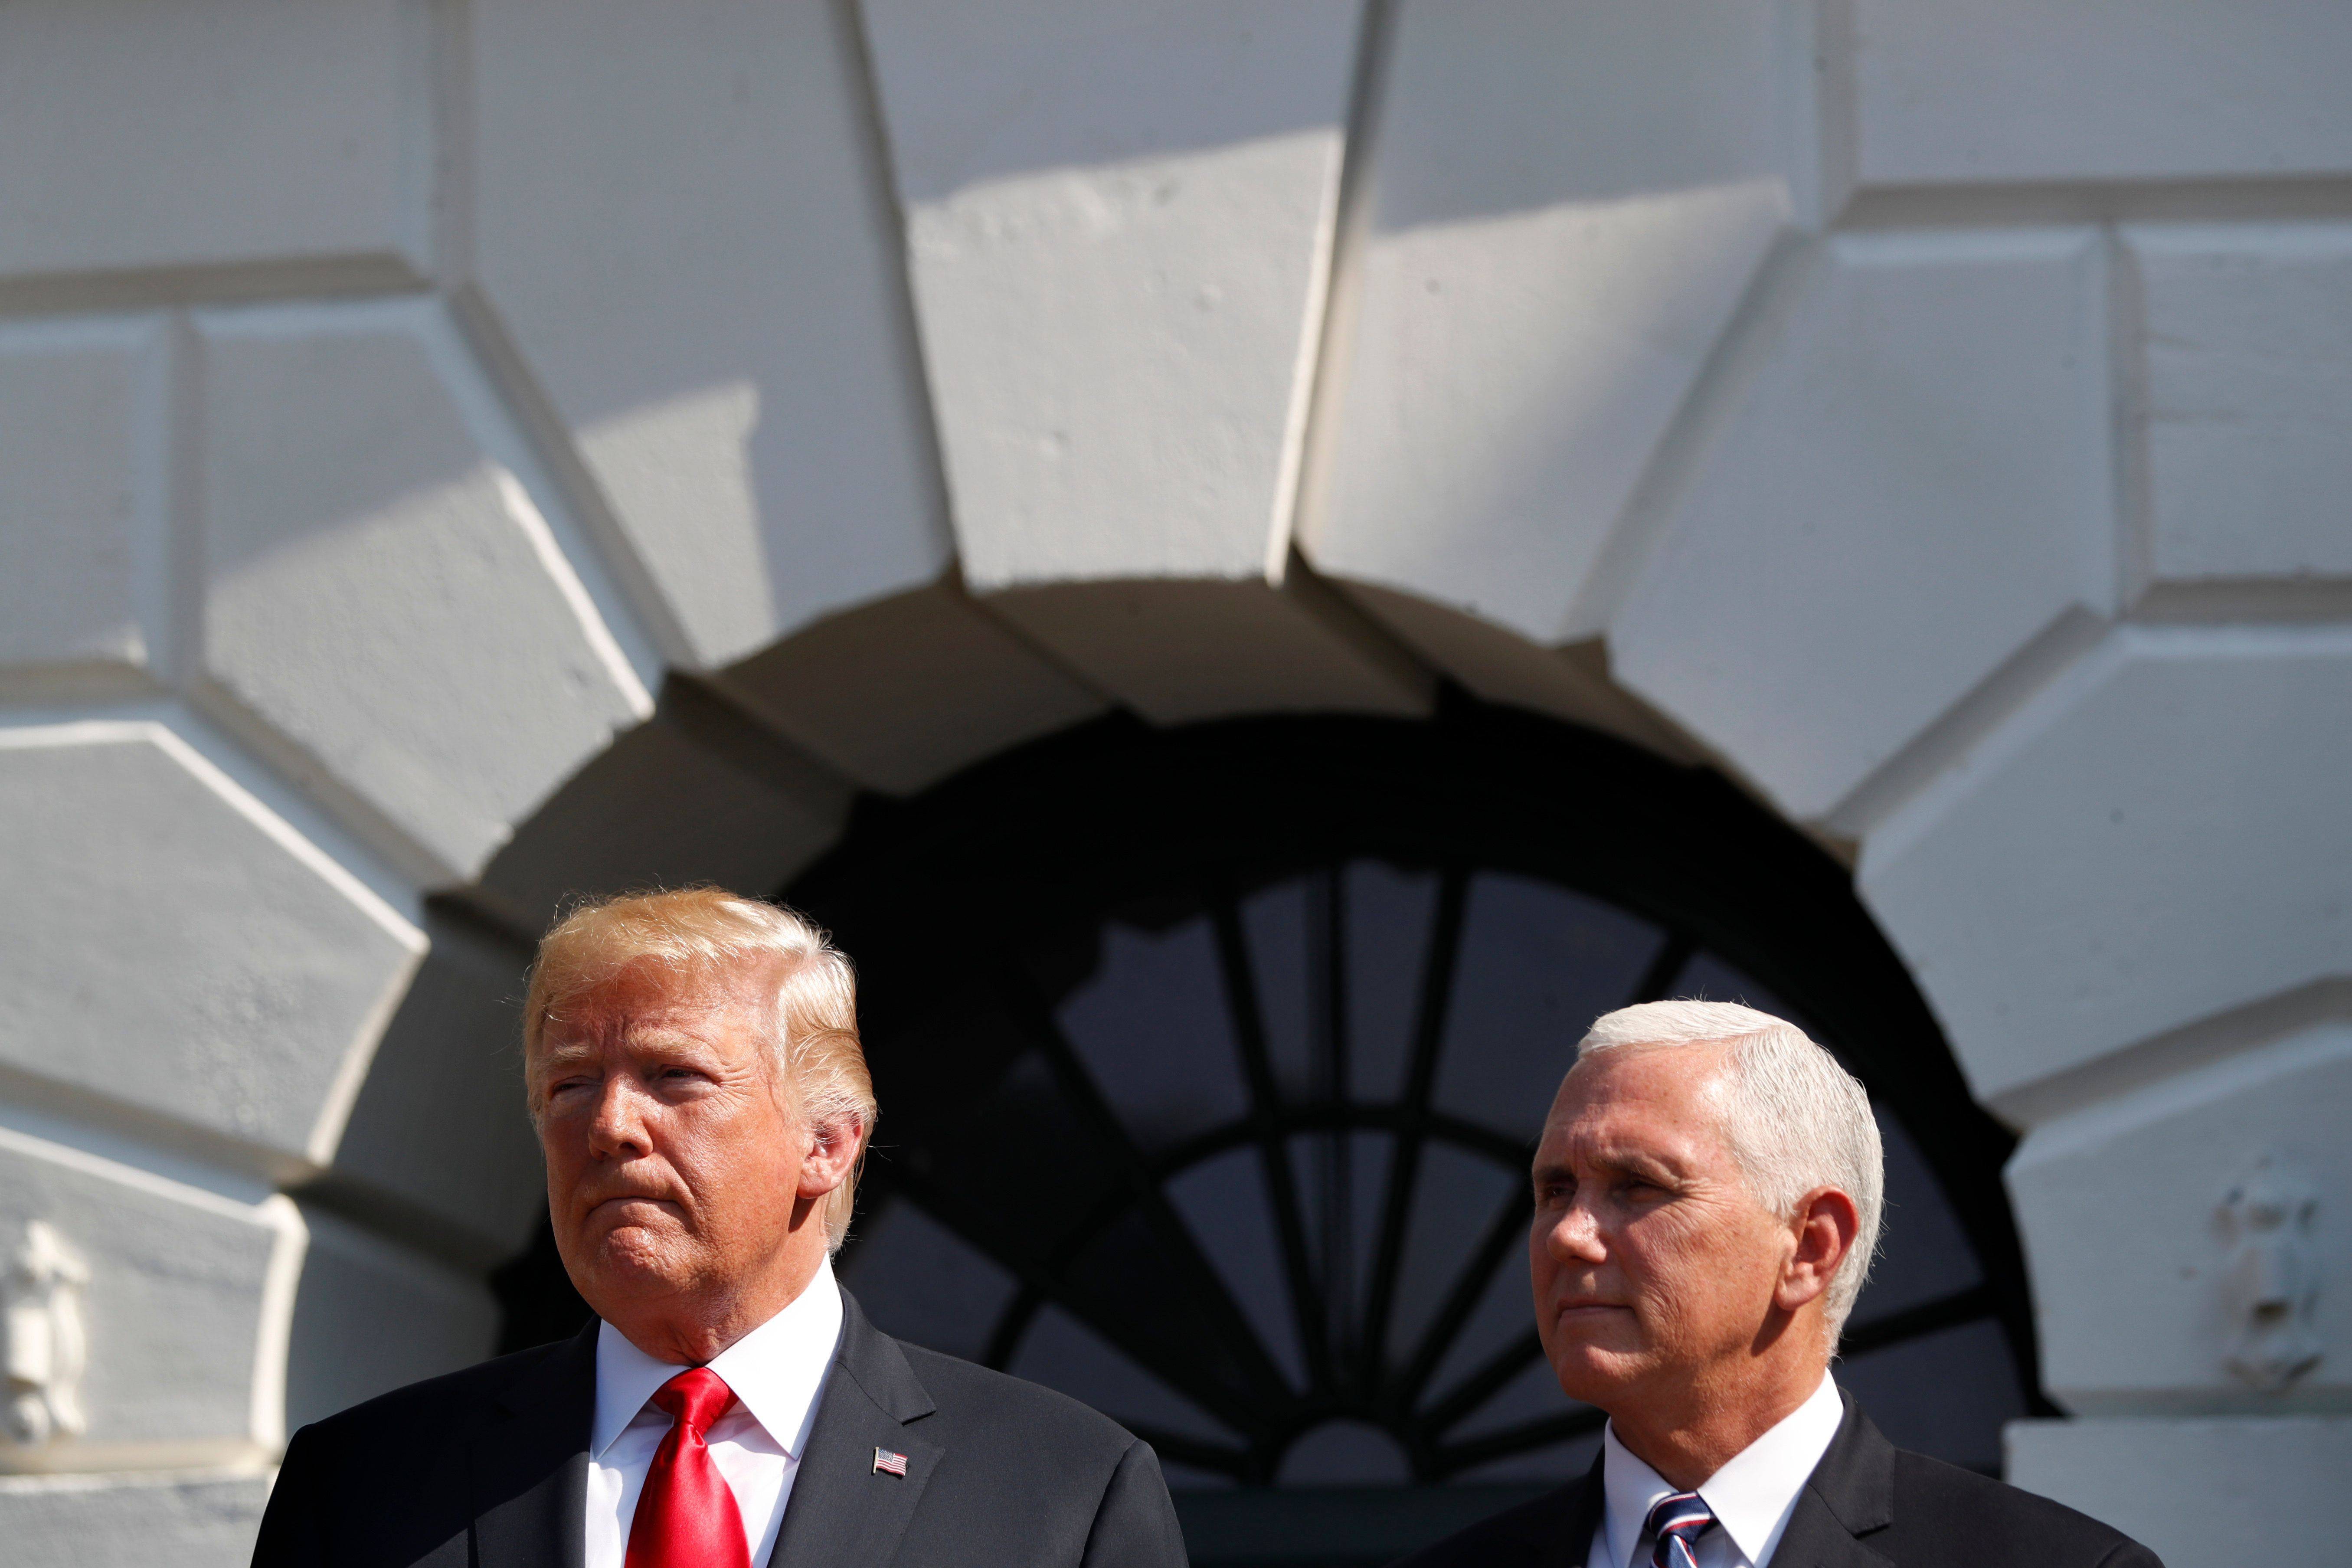 President Donald Trump, left, stands with Vice President Mike Pence, after delivering remarks on the economy from the South Lawn of the White House, Friday, July 27, 2018, in Washington. (AP Photo/Jacquelyn Martin)